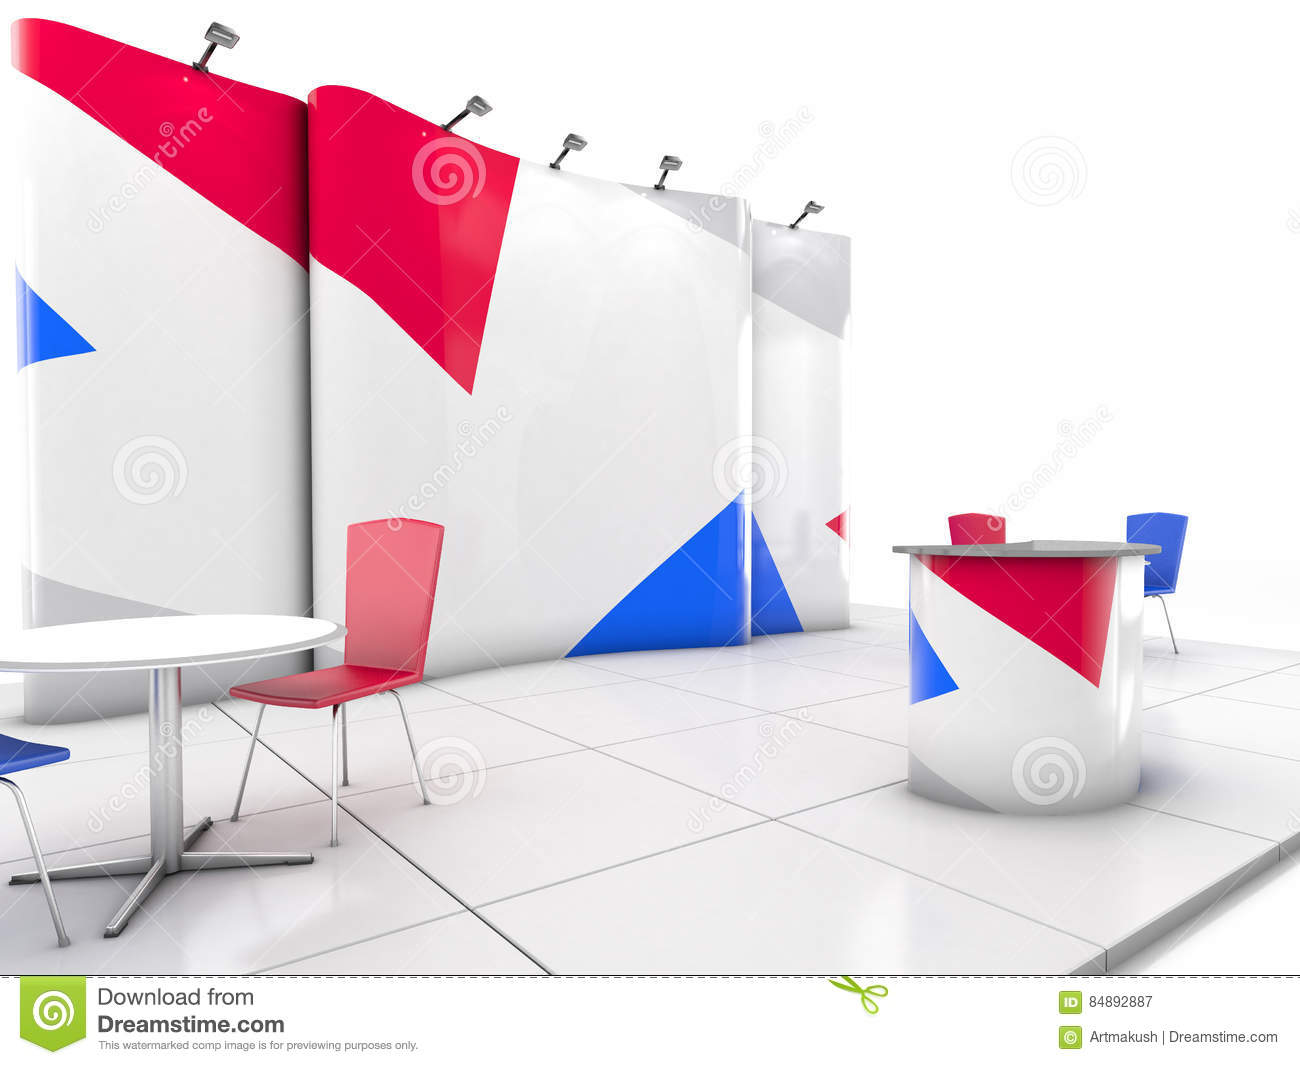 Expo Stands Shape Of You : Blank creative exhibition stand design with color shapes